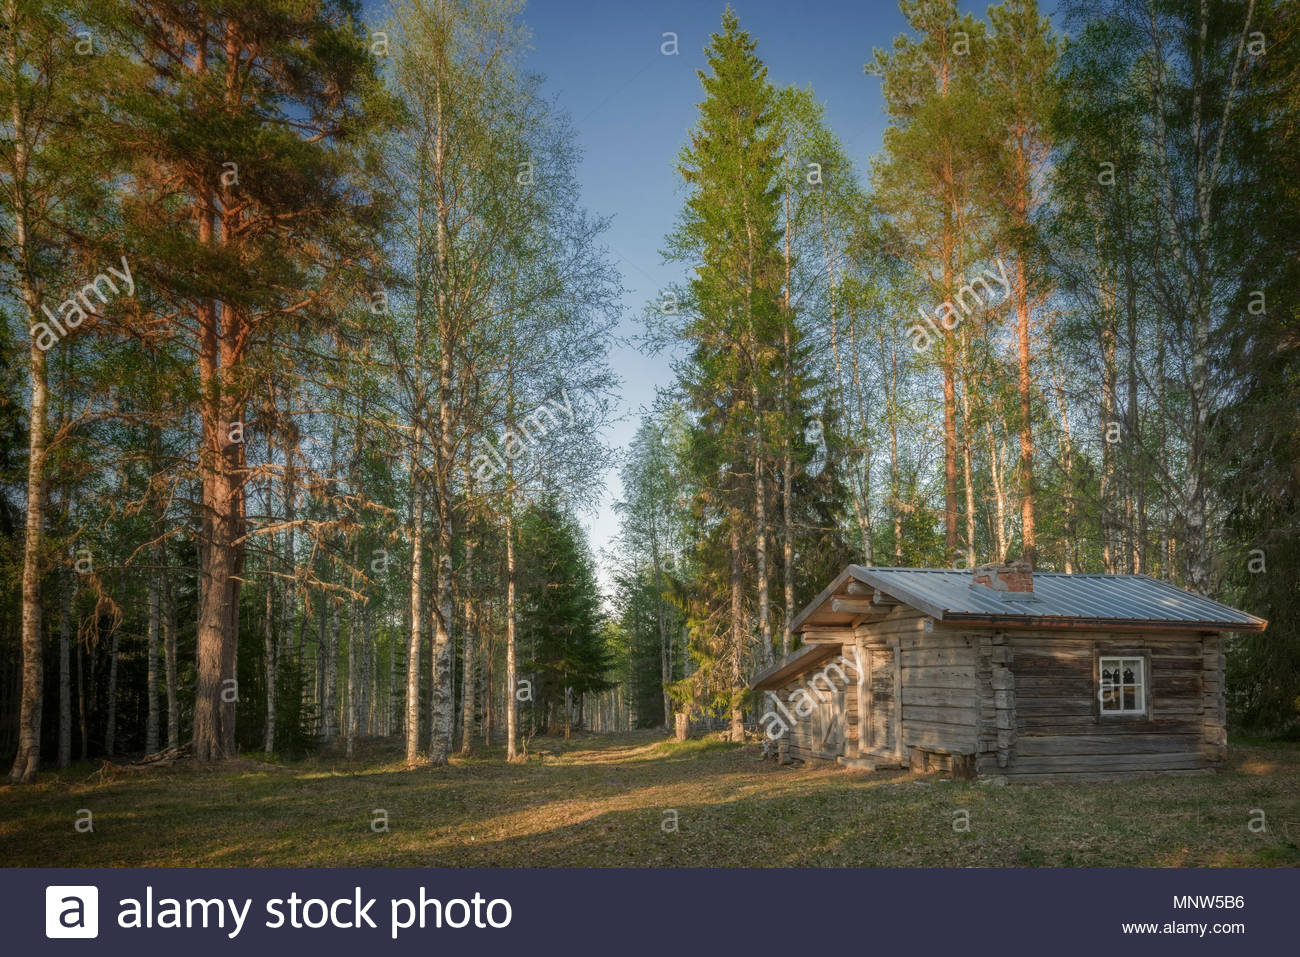 Log Cabin in an swedish forest - Stock Image